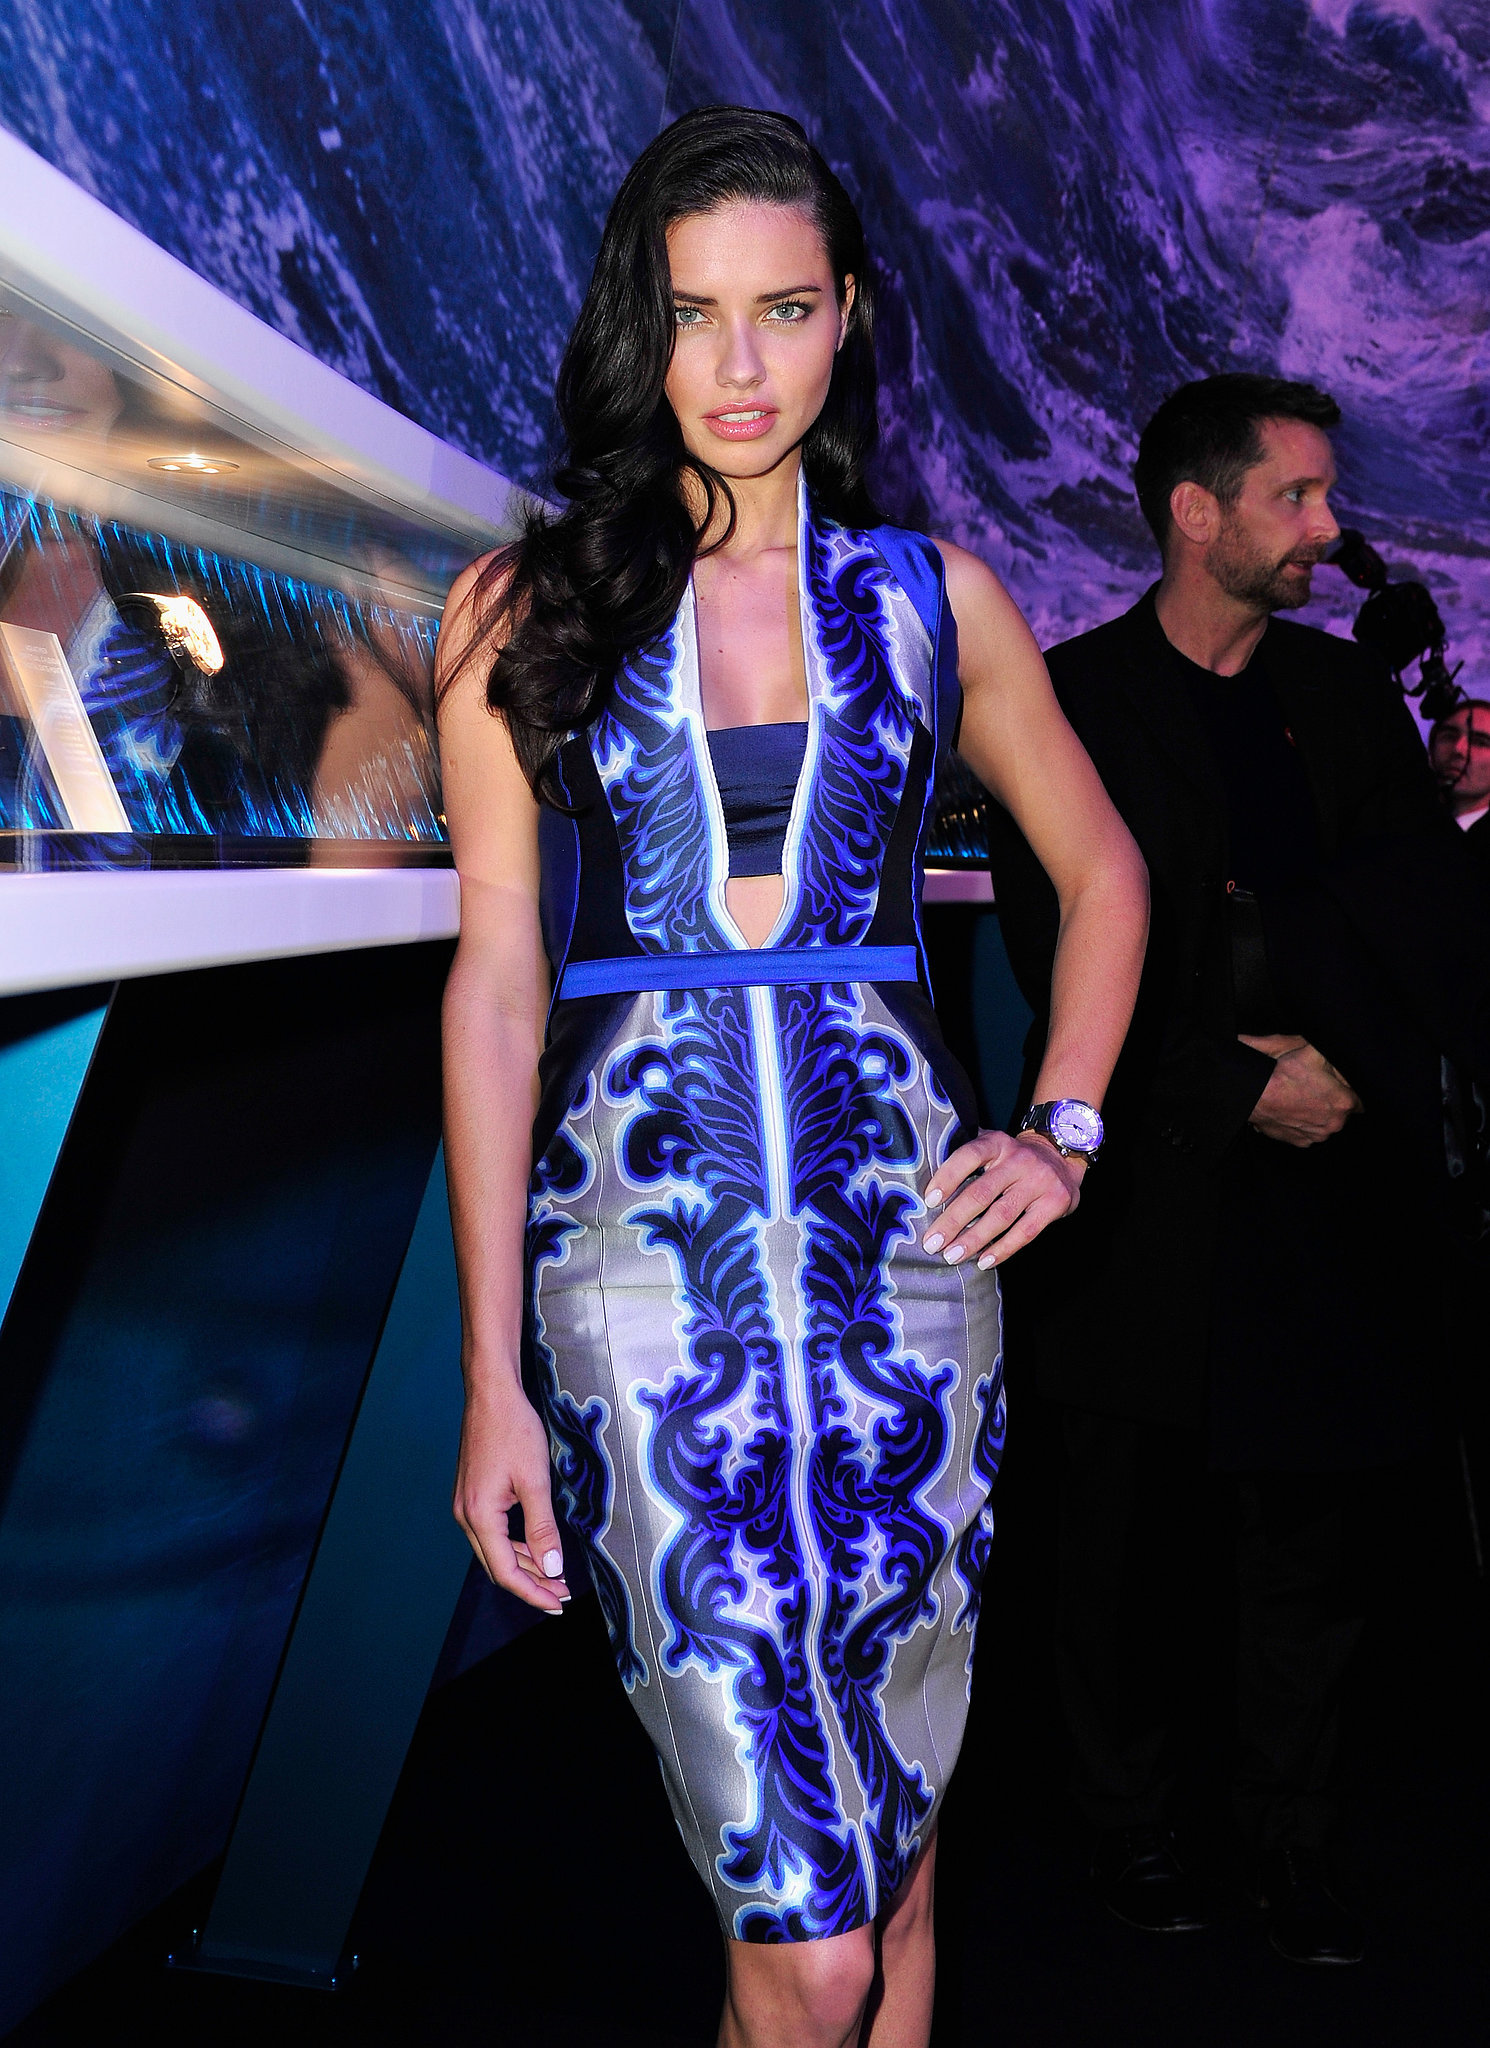 Adriana Lima in Bibhu Mohapatra at the IWC Schaffhausen event.